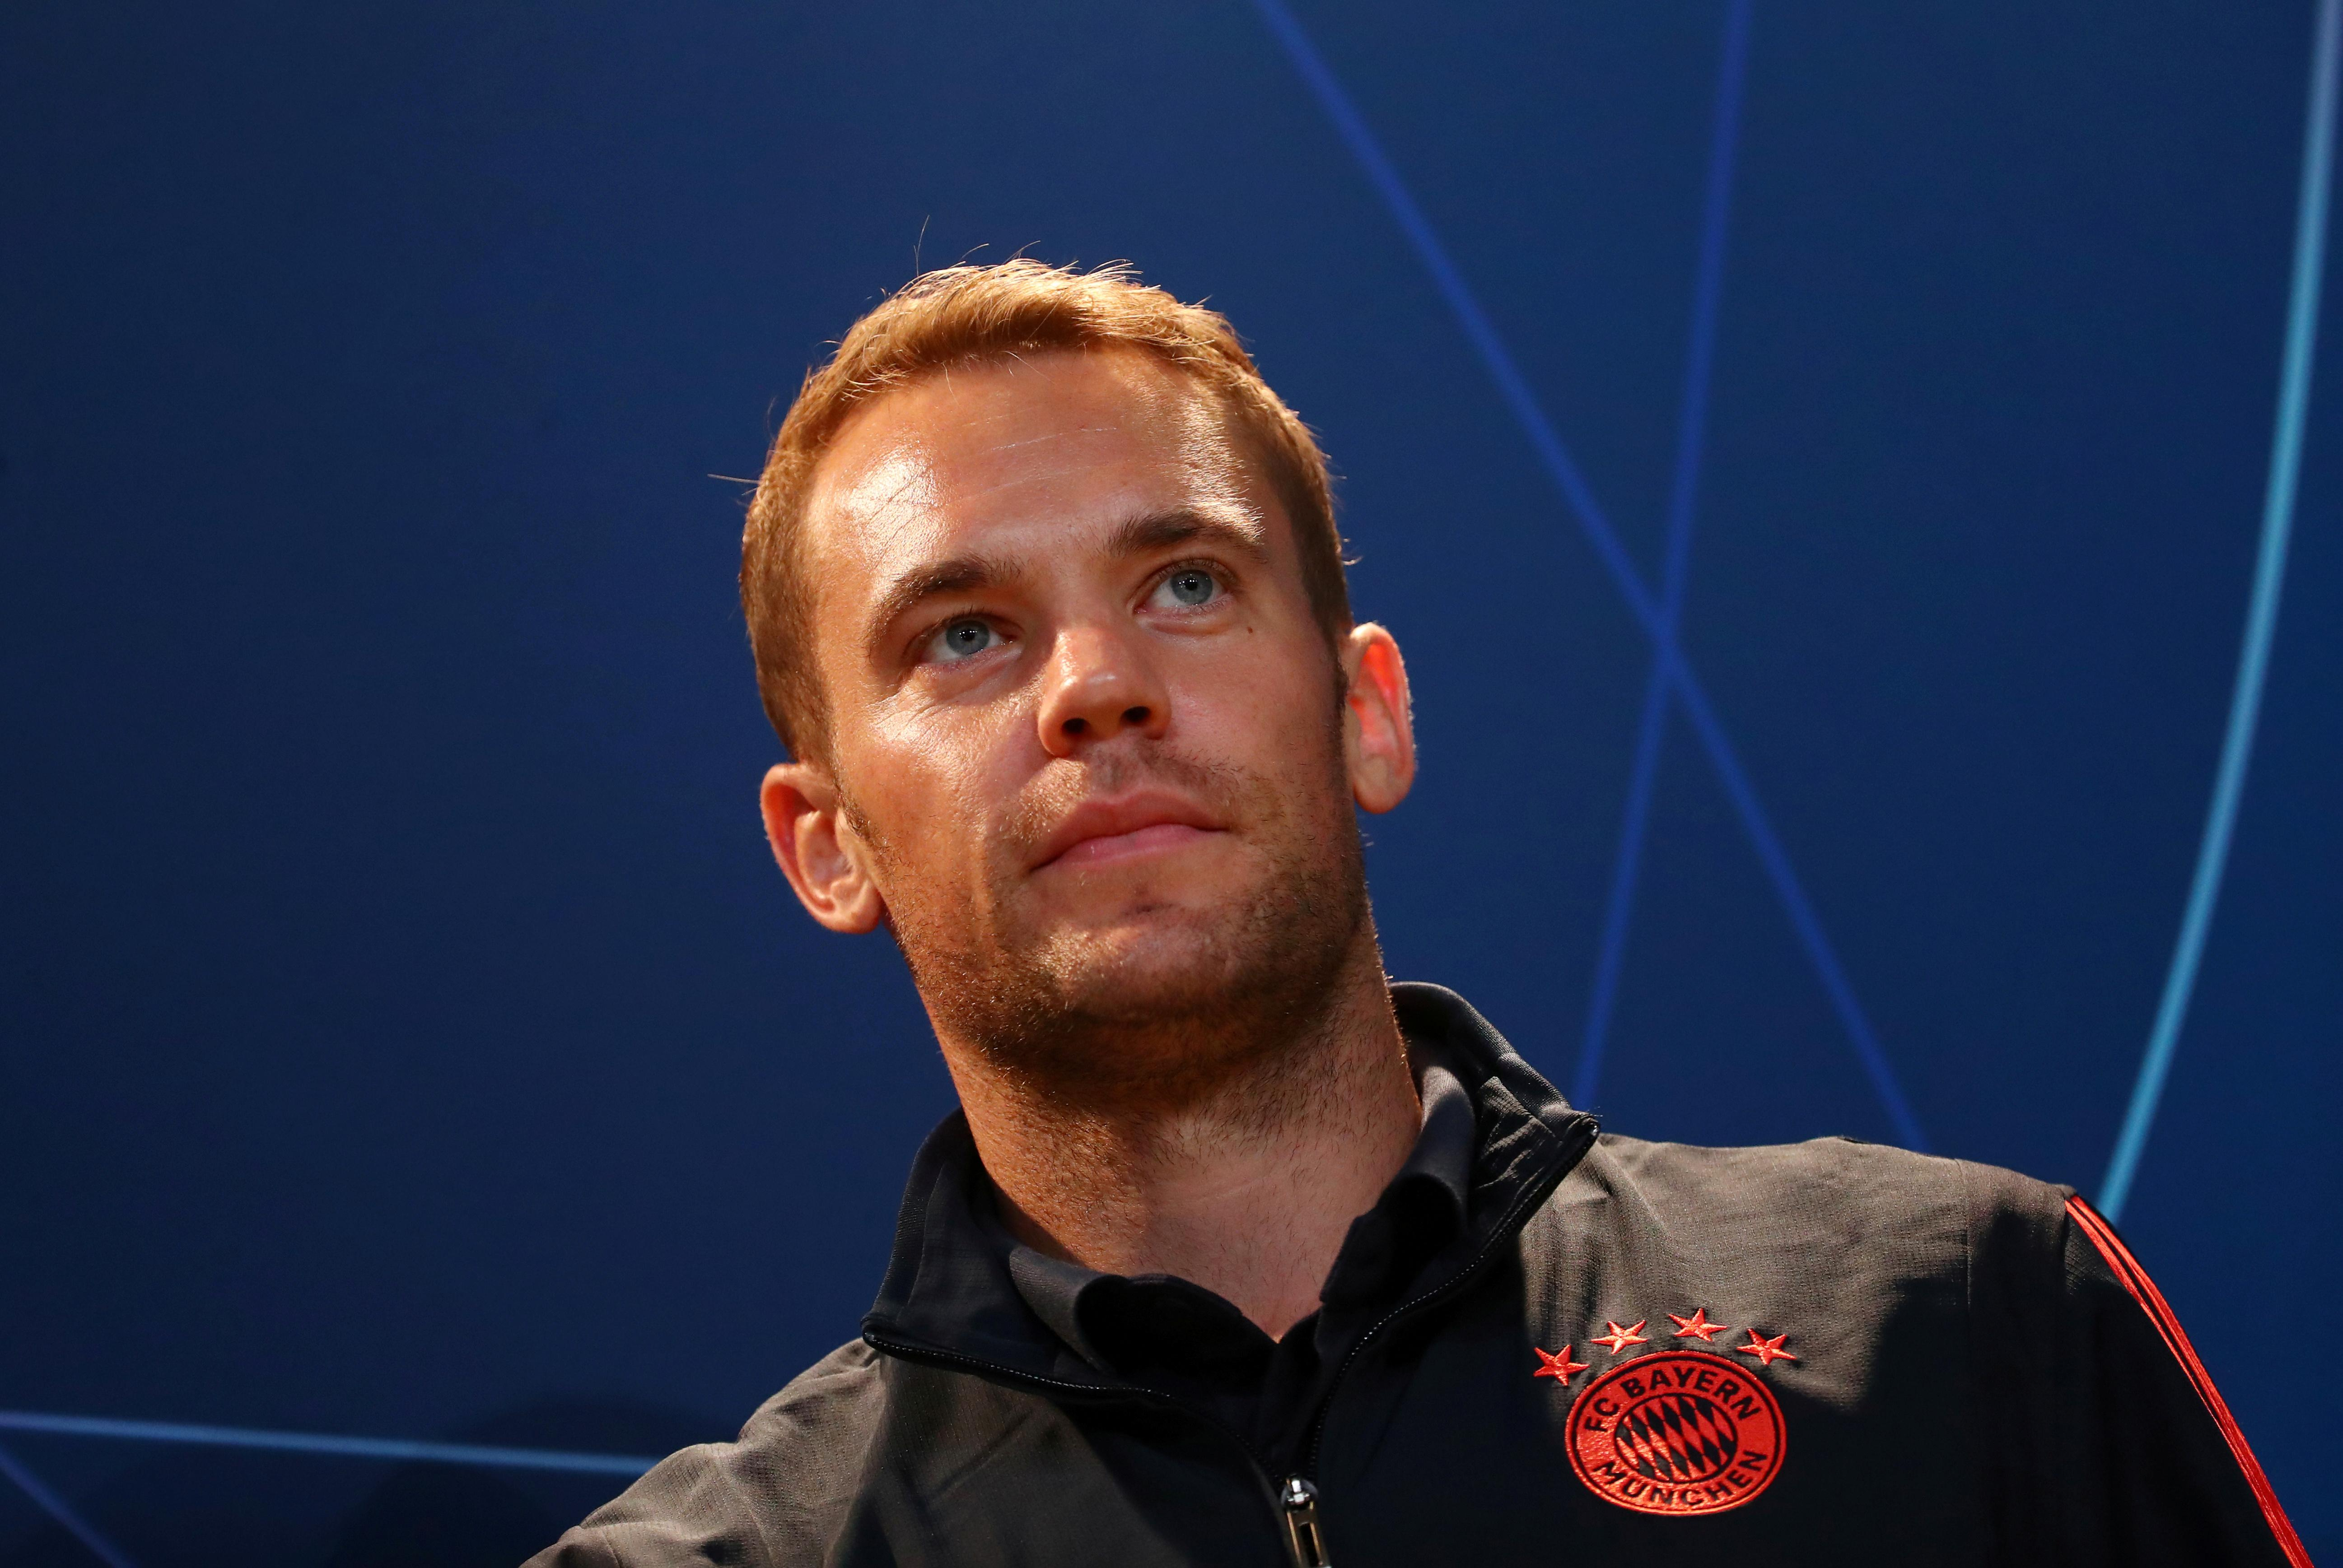 Neuer considering Germany retirement after Euro 2020 - report